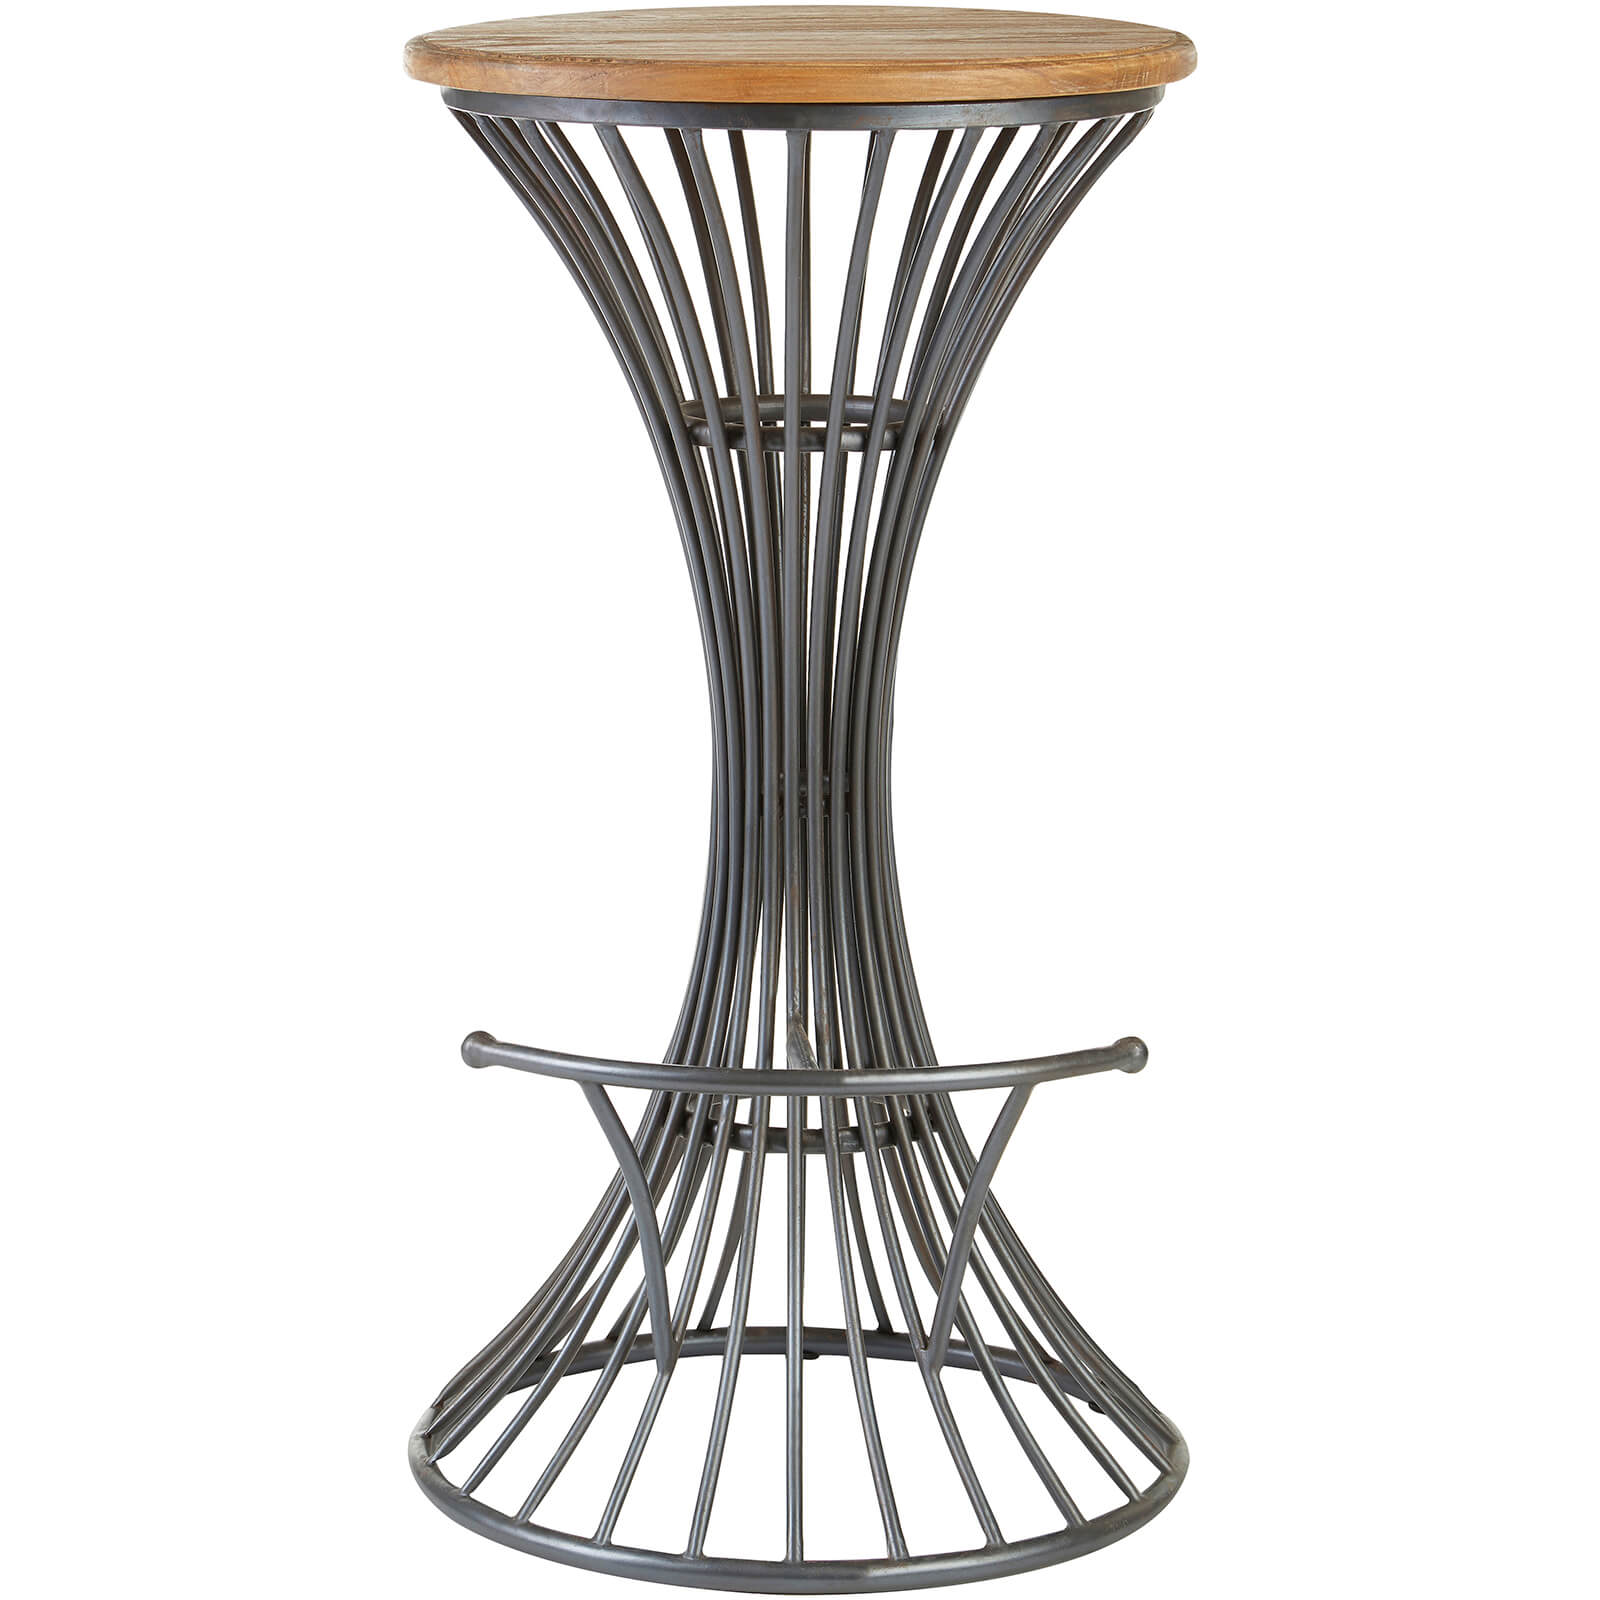 New Foundry Circular Bar Stool - Elm Wood/Metal